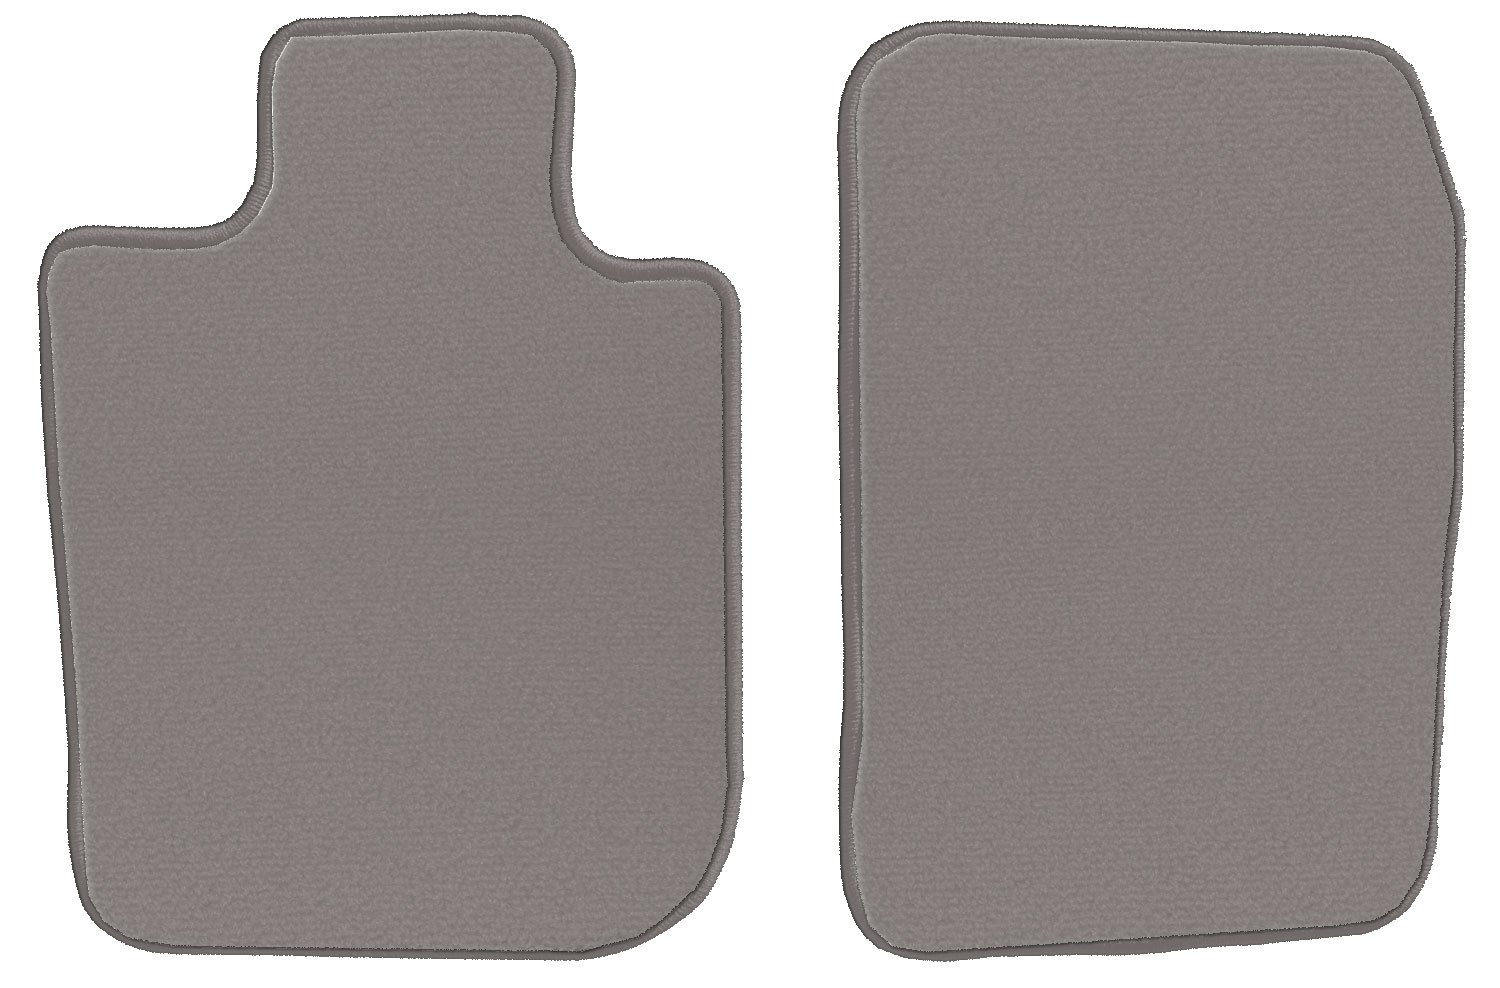 2010 2011 Toyota Tundra Crew Max Grey Loop Driver /& Passenger Floor 2009 GGBAILEY D2462A-F1A-GY-LP Custom Fit Car Mats for 2007 2008